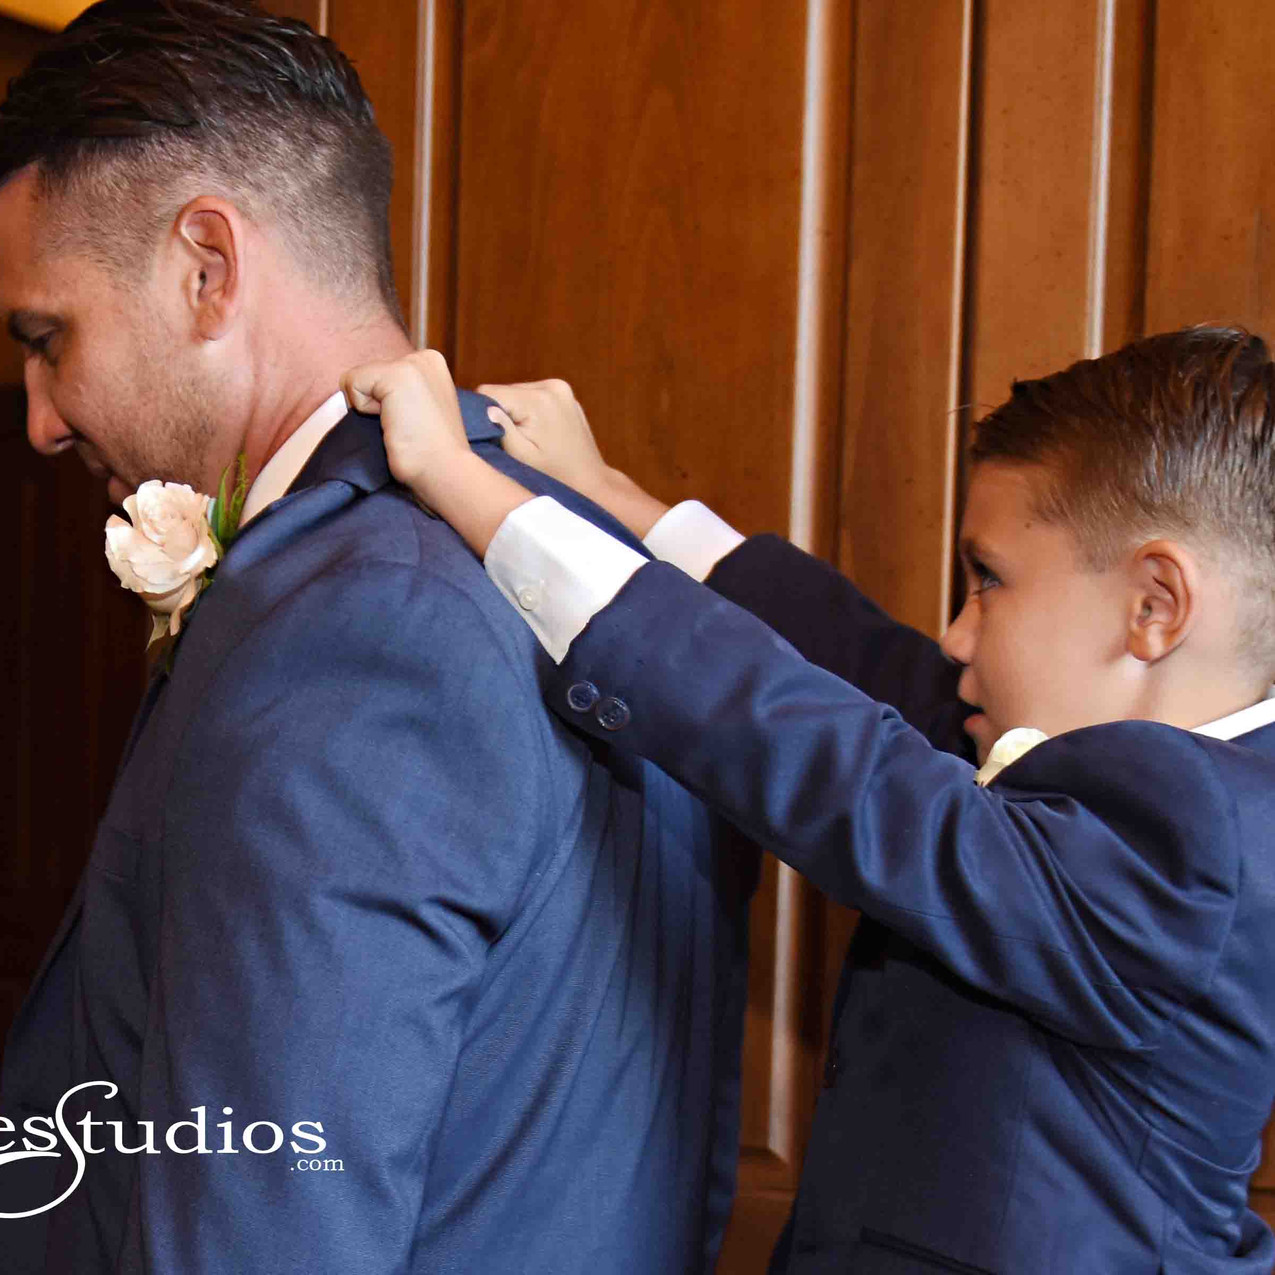 Even the groom gets a little help